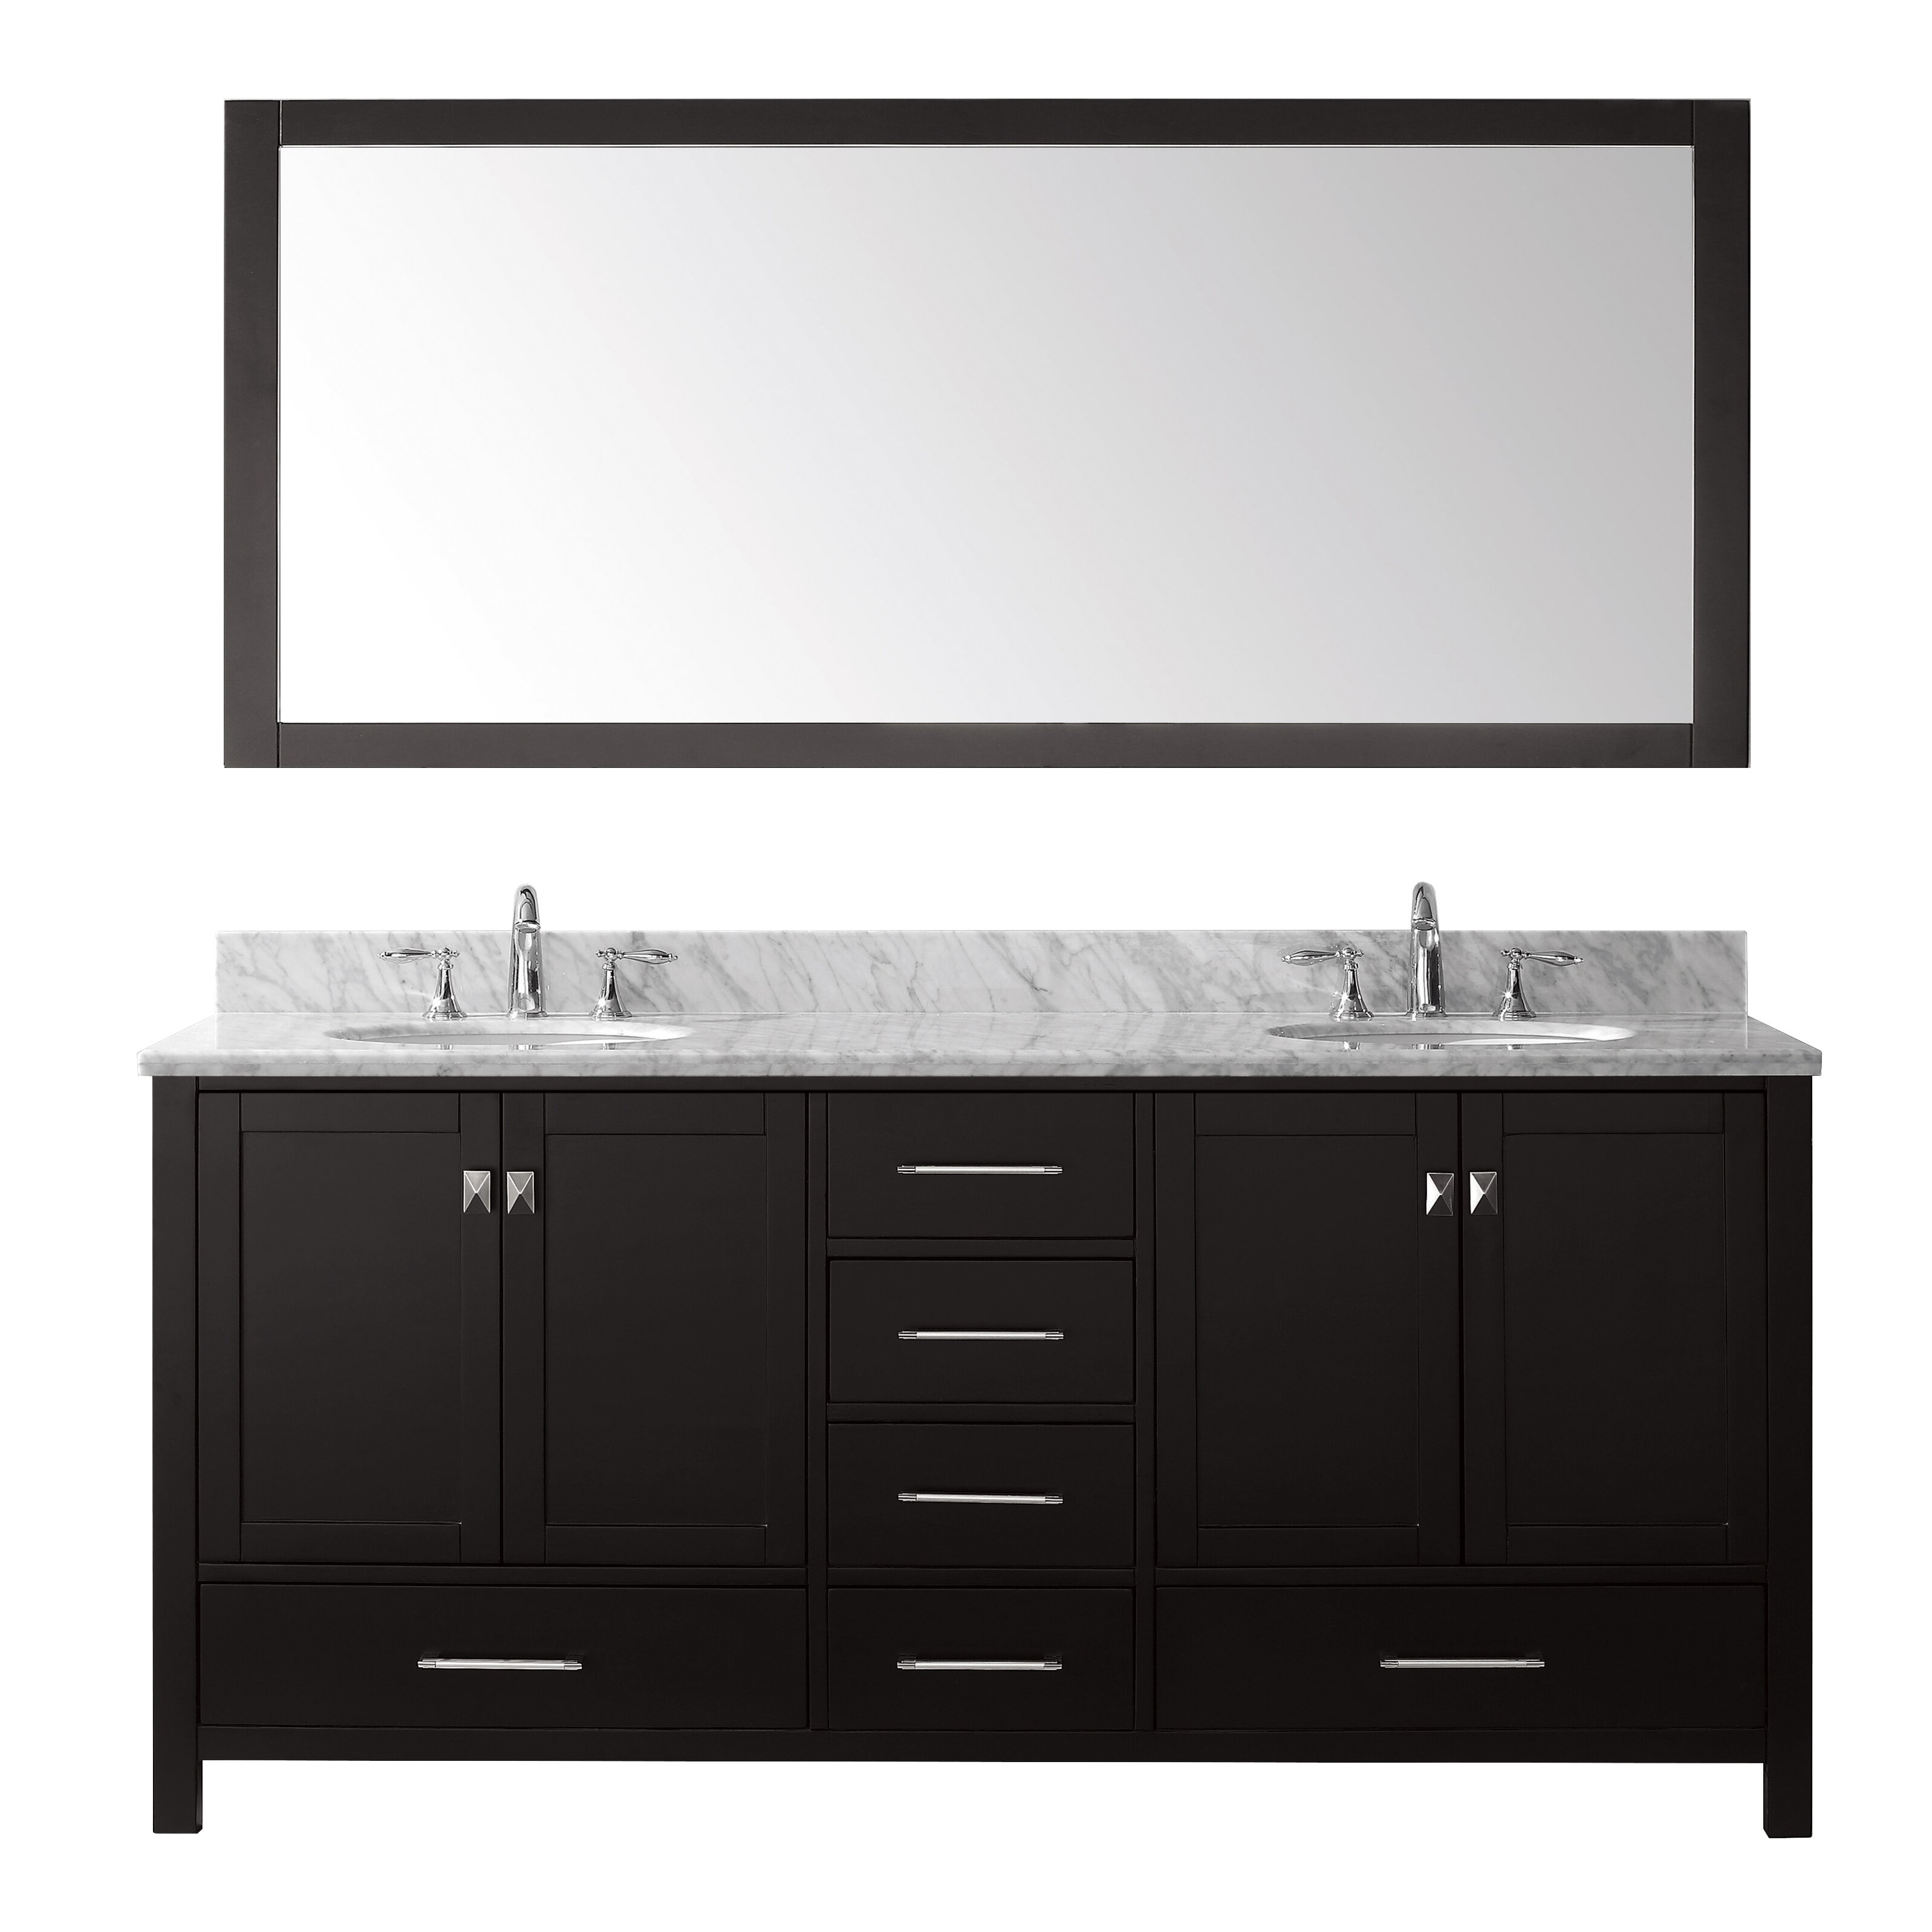 Bathroom Vanities Rochester Ny bathroom vanities rochester ny